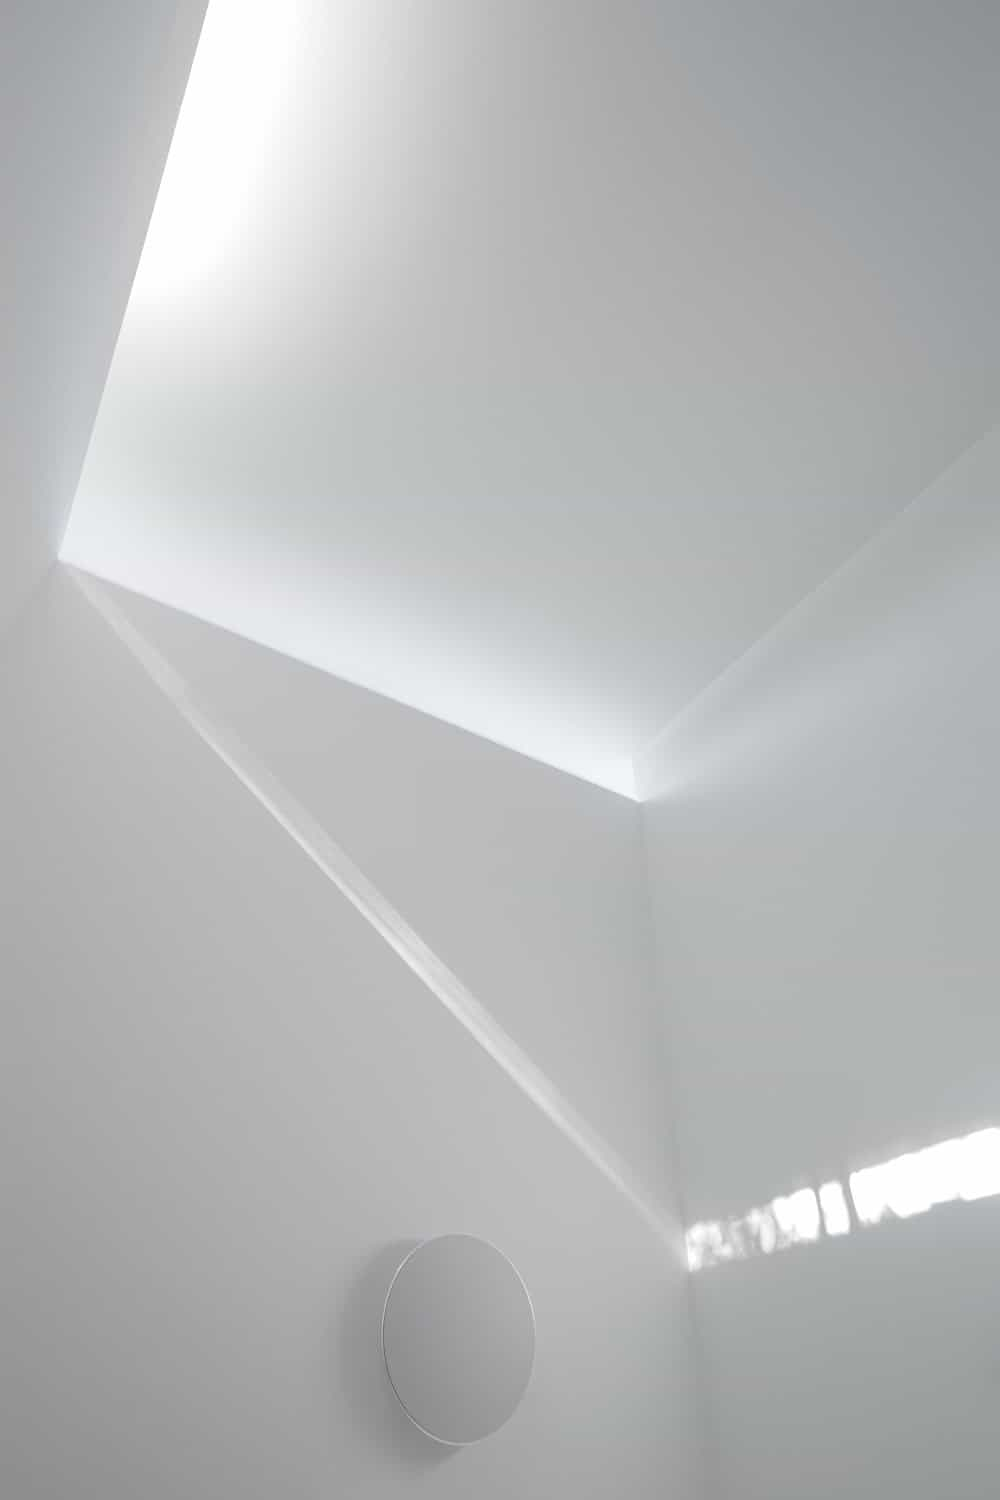 This is a view of the ceiling, its transom windows and the beam of light it produces.